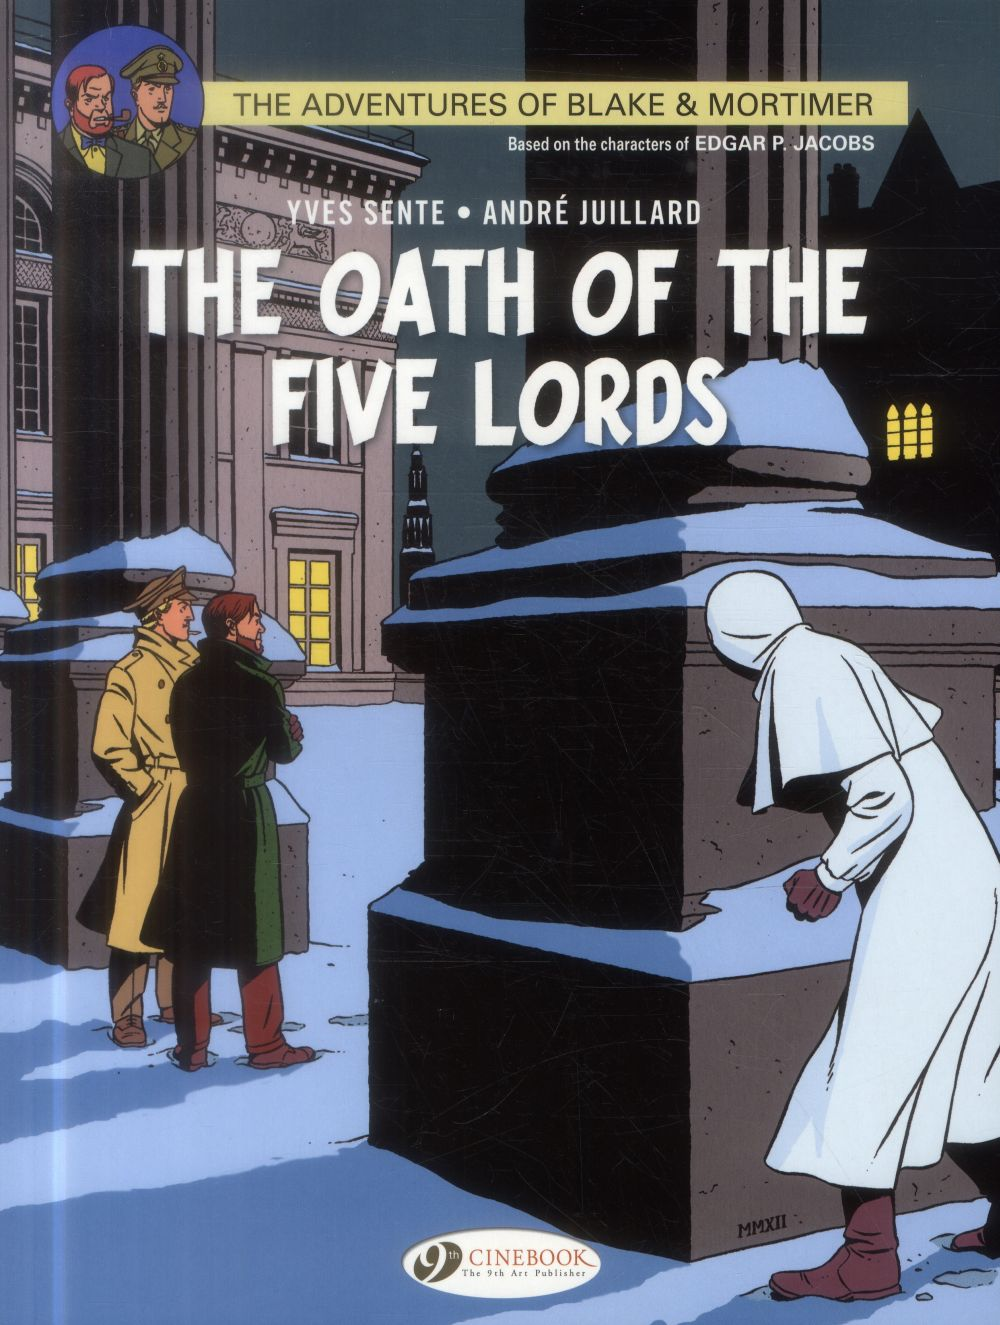 The oath of the five lords